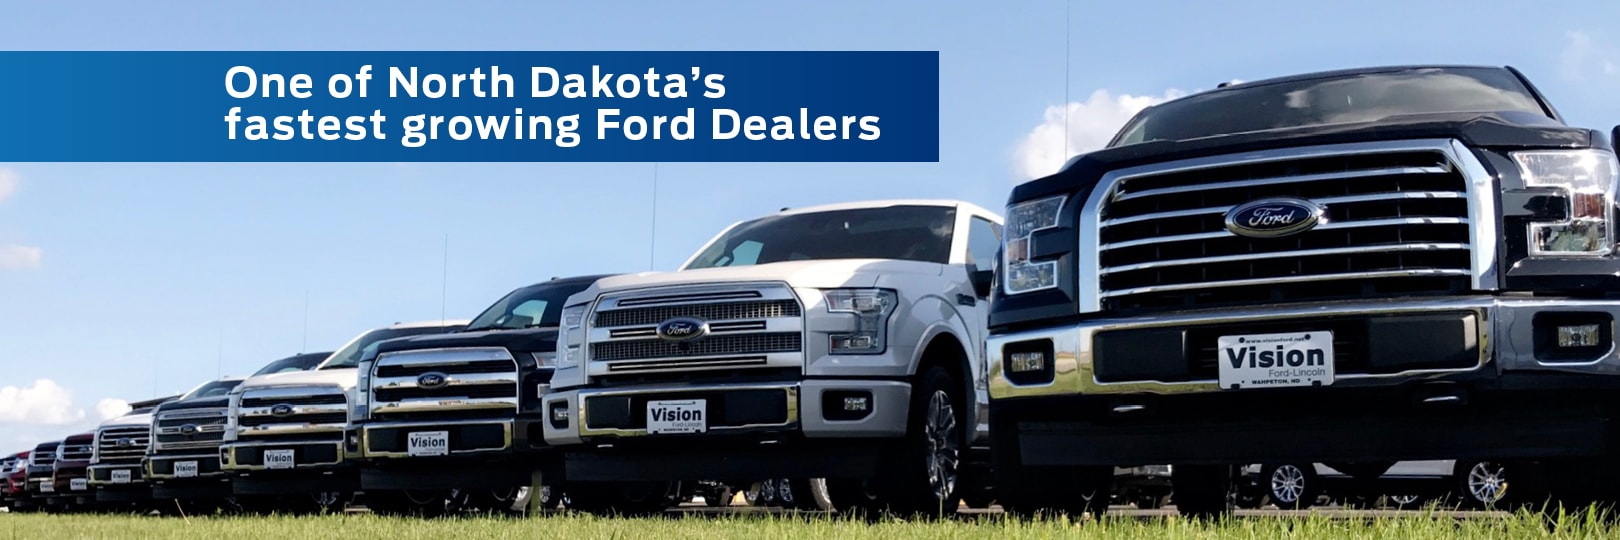 New 2018 2019 Ford And Used Car Dealer Serving Wahpeton Vision